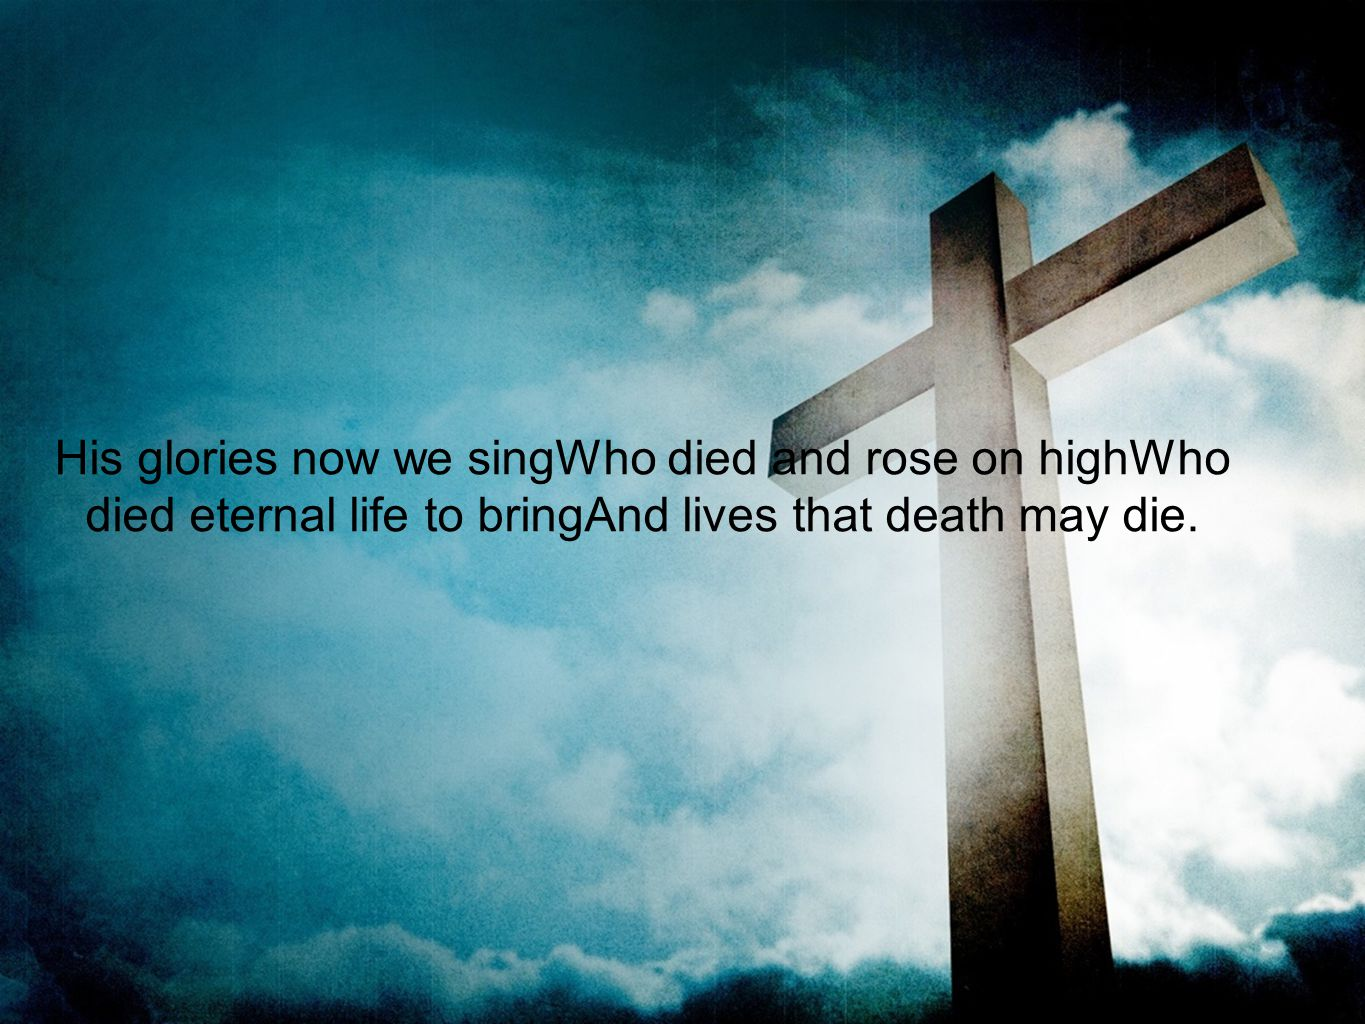 His glories now we singWho died and rose on highWho died eternal life to bringAnd lives that death may die.